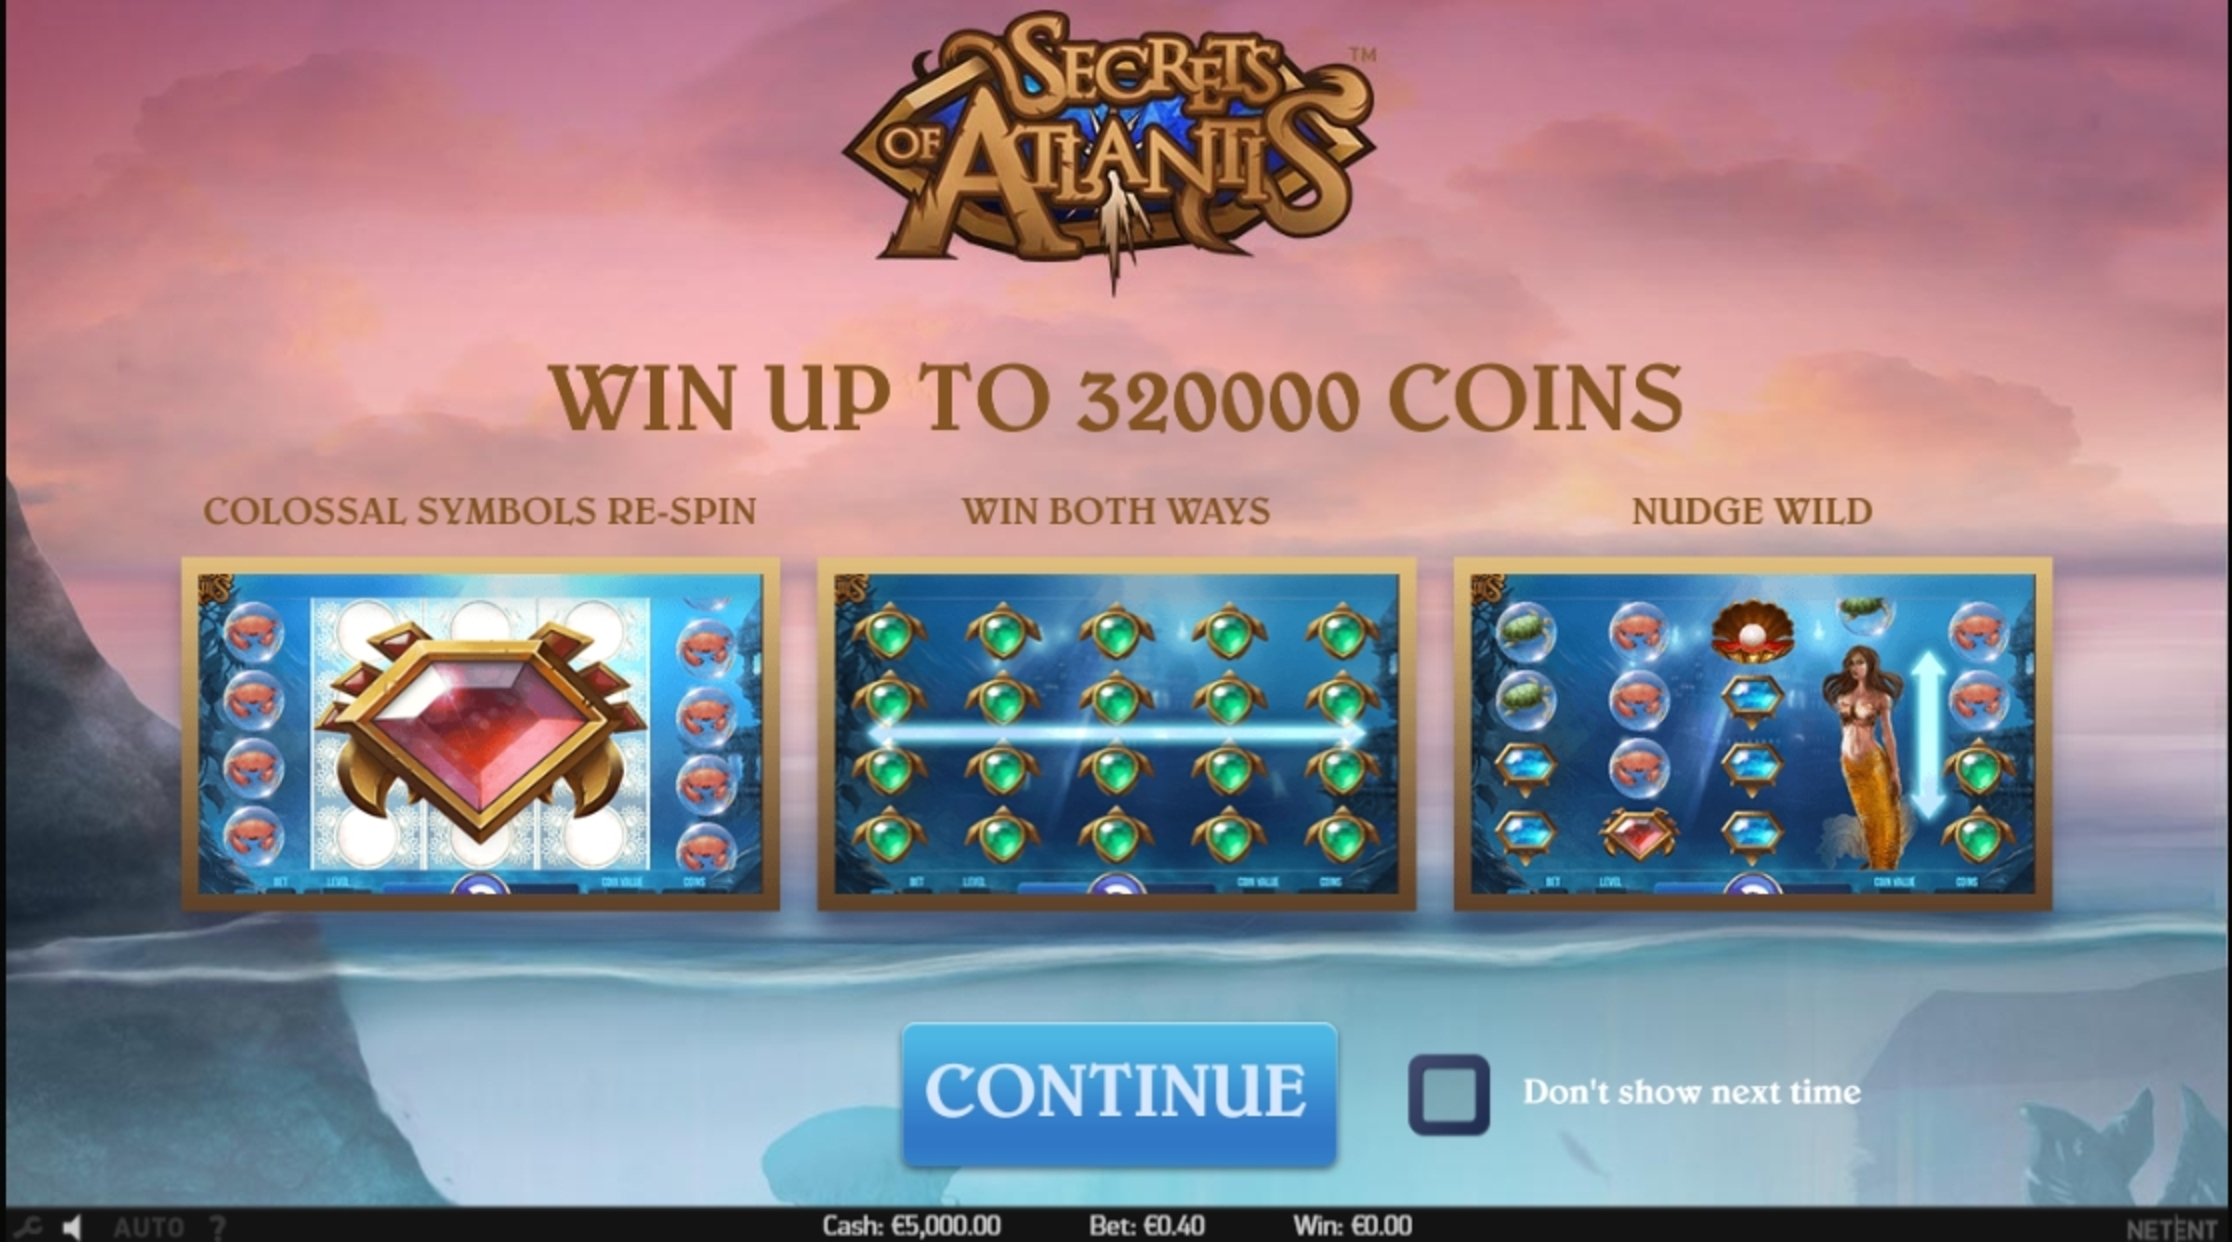 Play Secrets of Atlantis Free Casino Slot Game by NetEnt